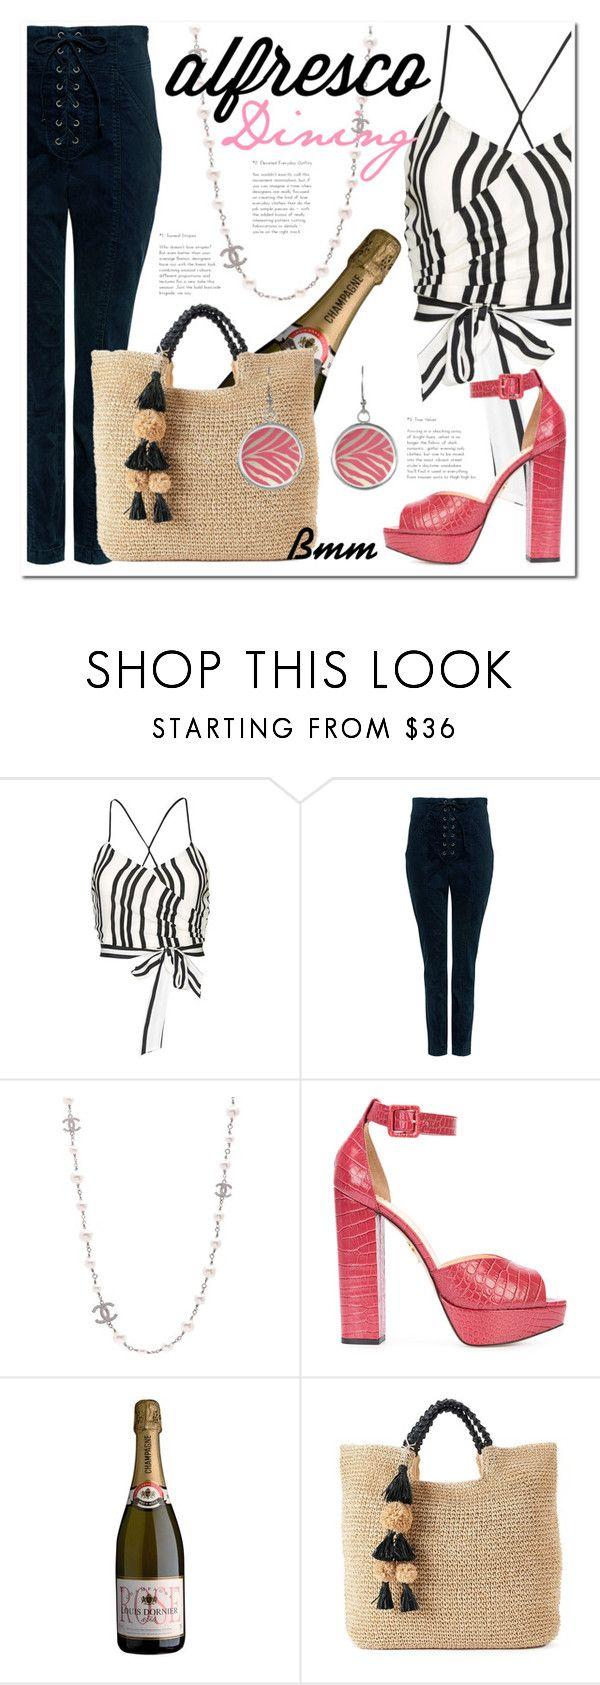 """Stasera si cena Al Fresco!!"" by bianca1408 ❤ liked on Polyvore featuring Alice + Olivia, A.L.C., Chanel, Charlotte Olympia, SONOMA Goods for Life and alfrescodining"